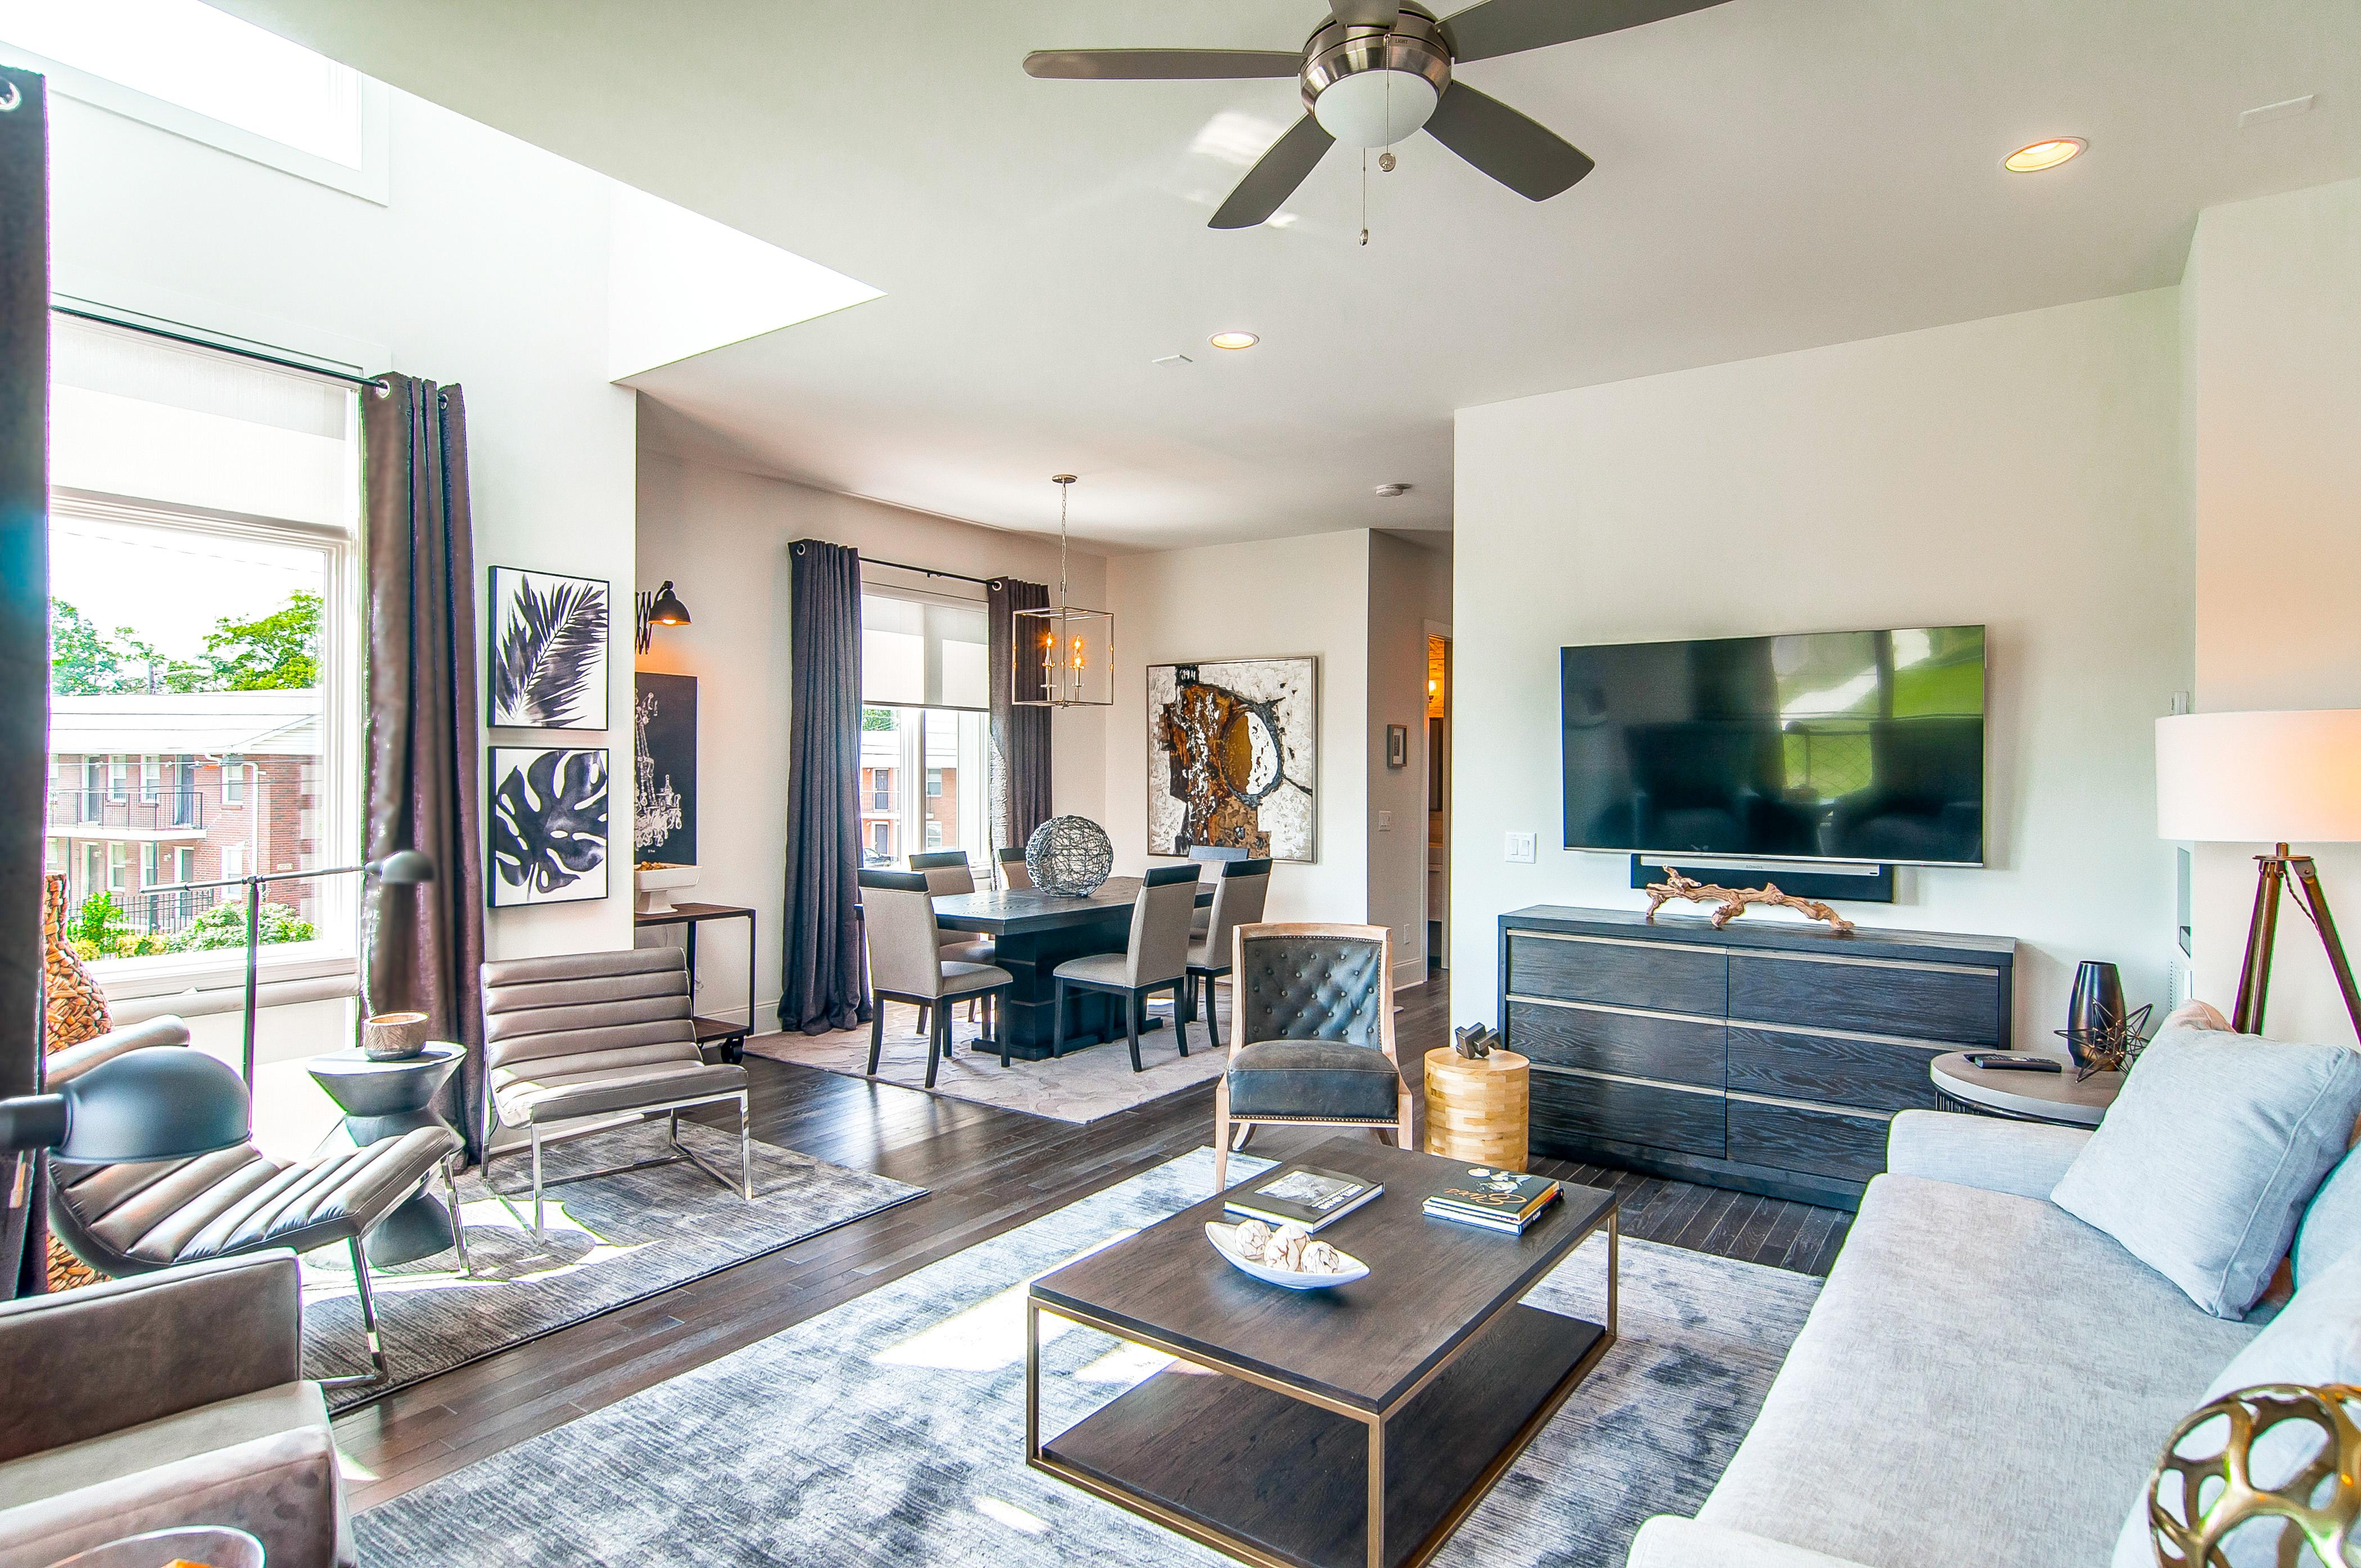 Property Image 1 - Nashville Townhome with Stylish Decor and Roof-Deck